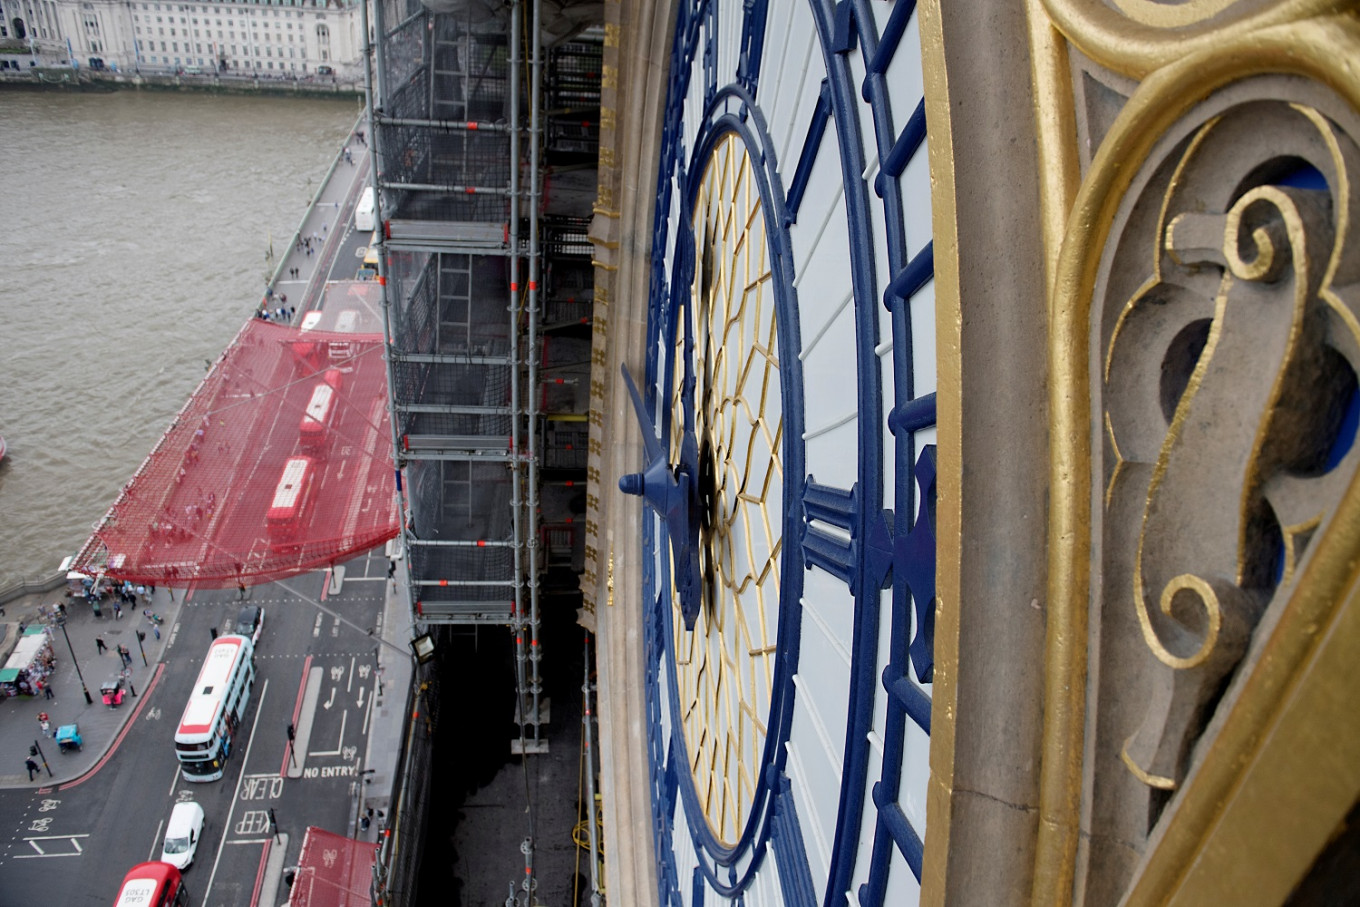 UK parliament's 'Big Ben' bell marks 160 years with silence as restoration work continues